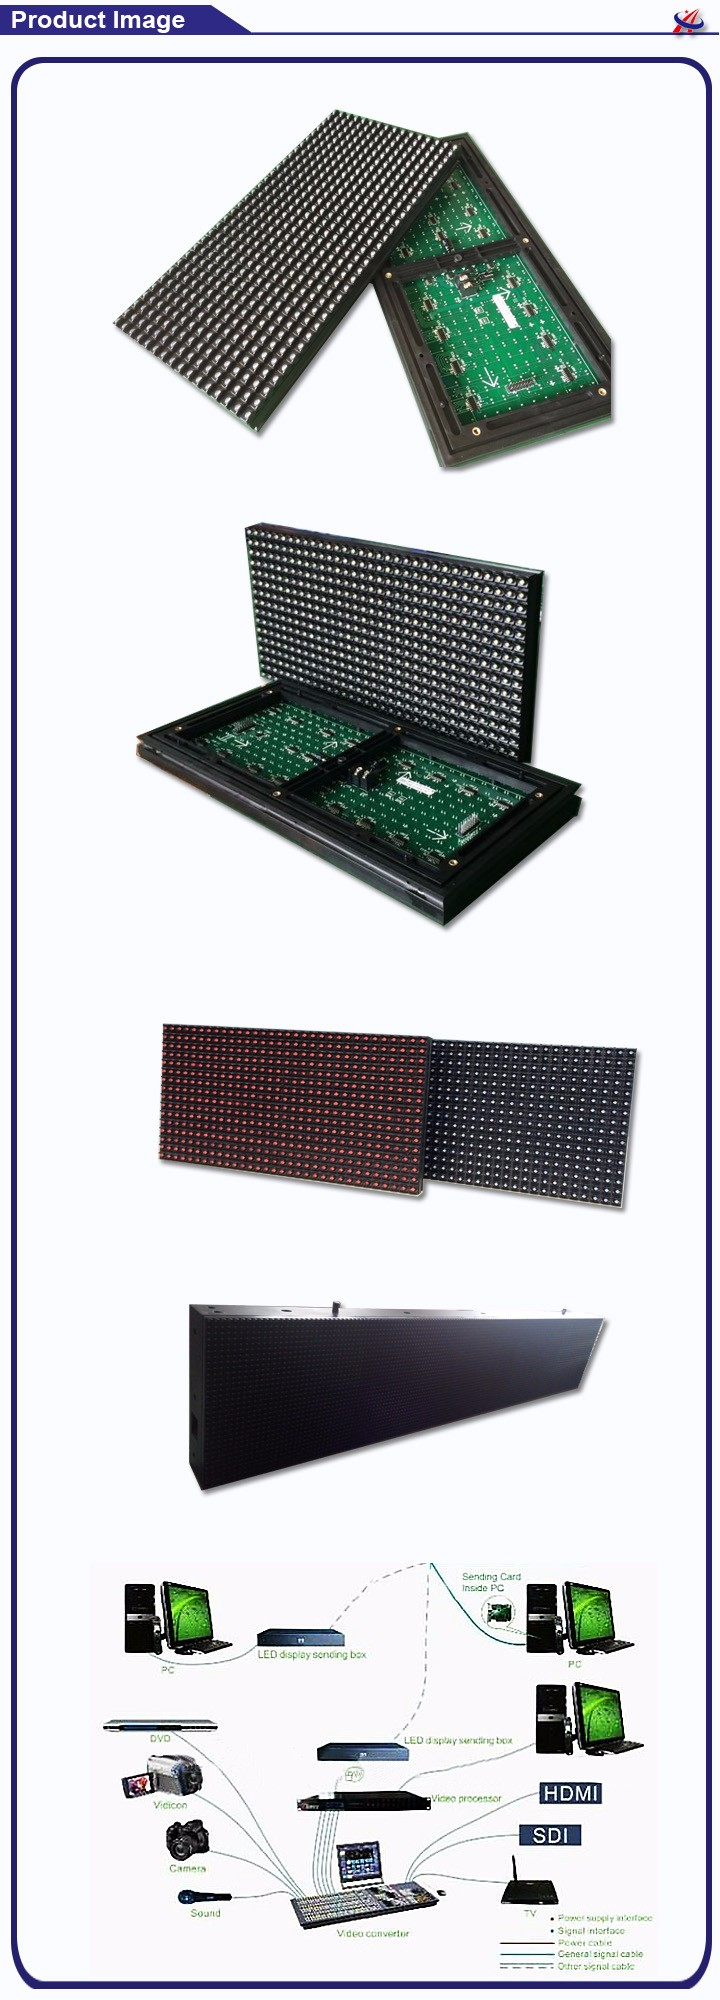 High brightness P10 1White outdoor waterproof programmable led display panels 32*16 dots led sign for price tag